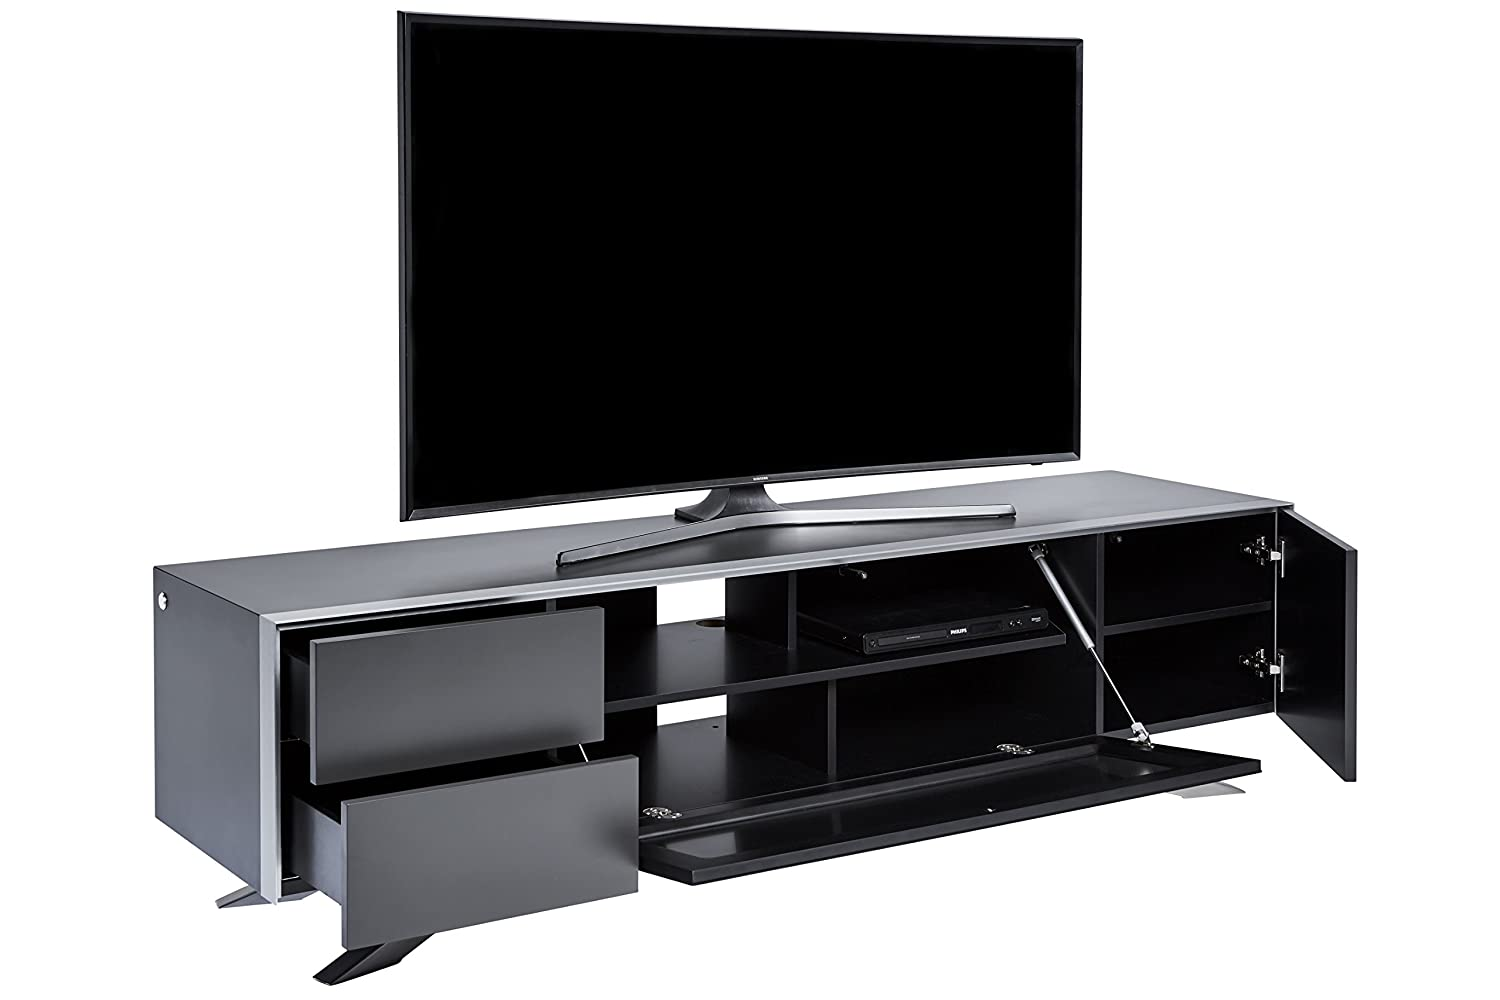 jahnke tv lowboard Jahnke SL 5180 AF TV Stand, Wood, brown, 49.3 x 45 x 180 cm: Amazon.co.uk:  Kitchen u0026 Home